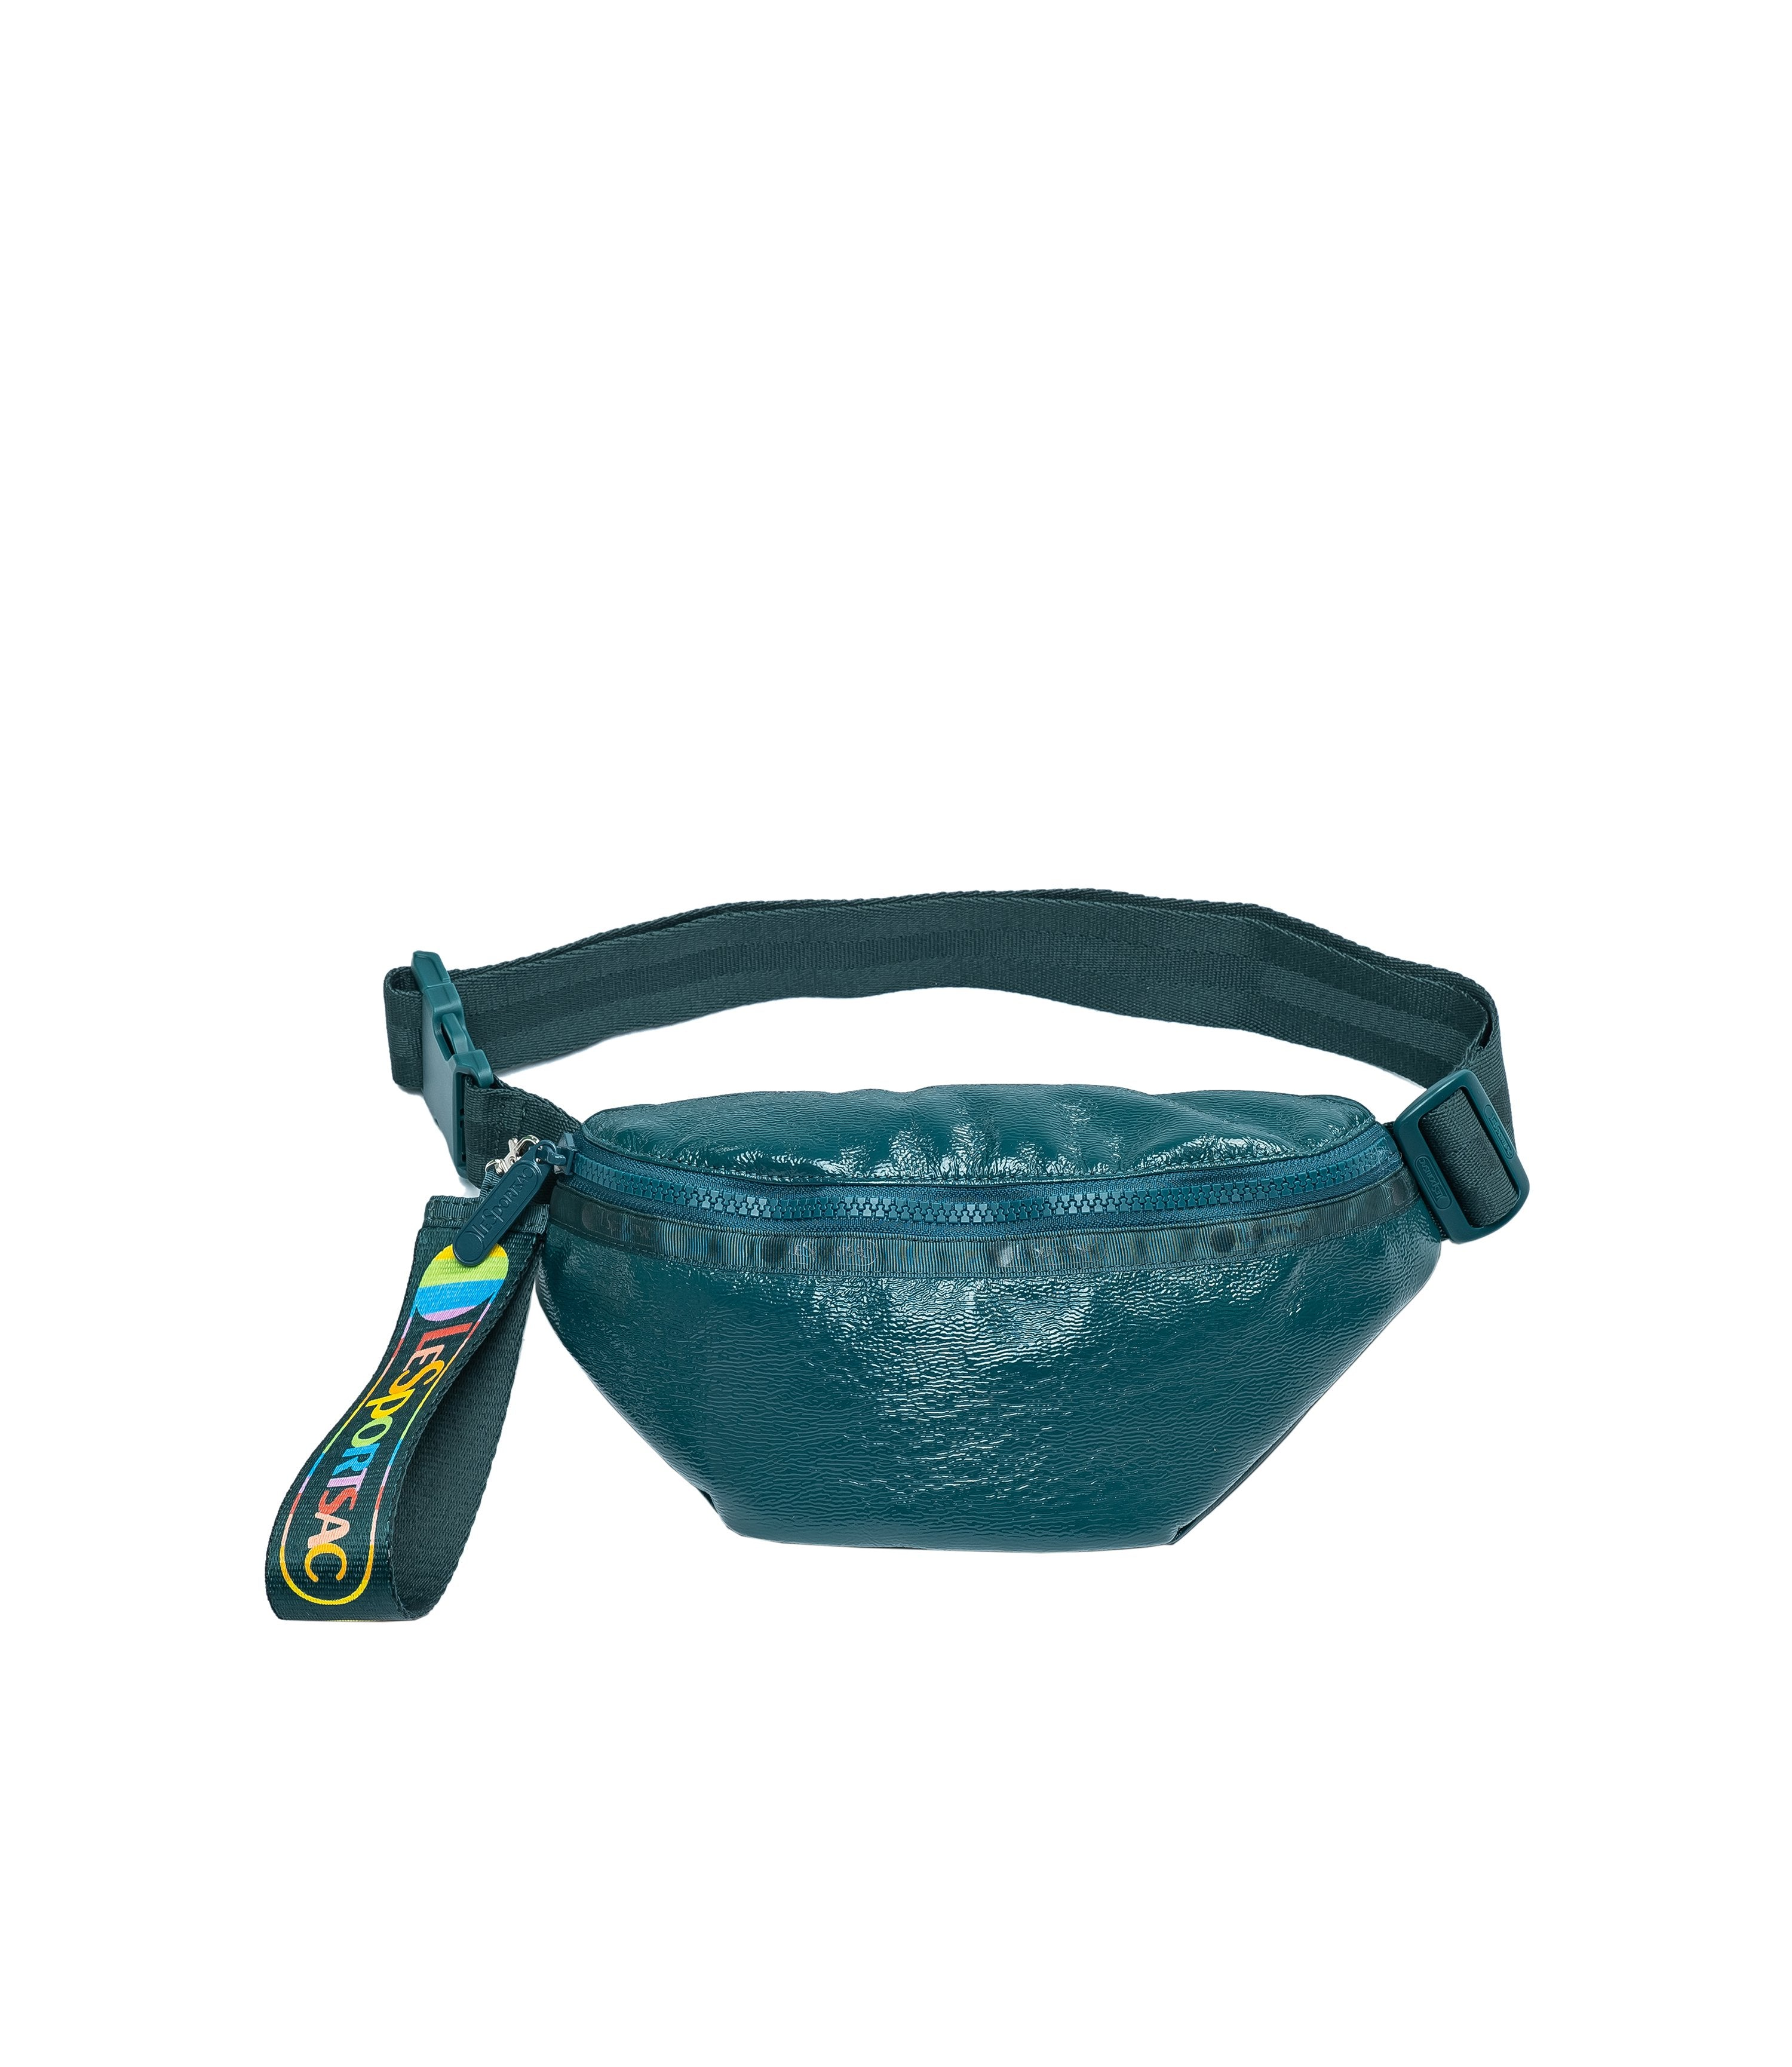 LeSportsac - Accessories - Rounded Belt Bag - Emerald Crinkle Patent